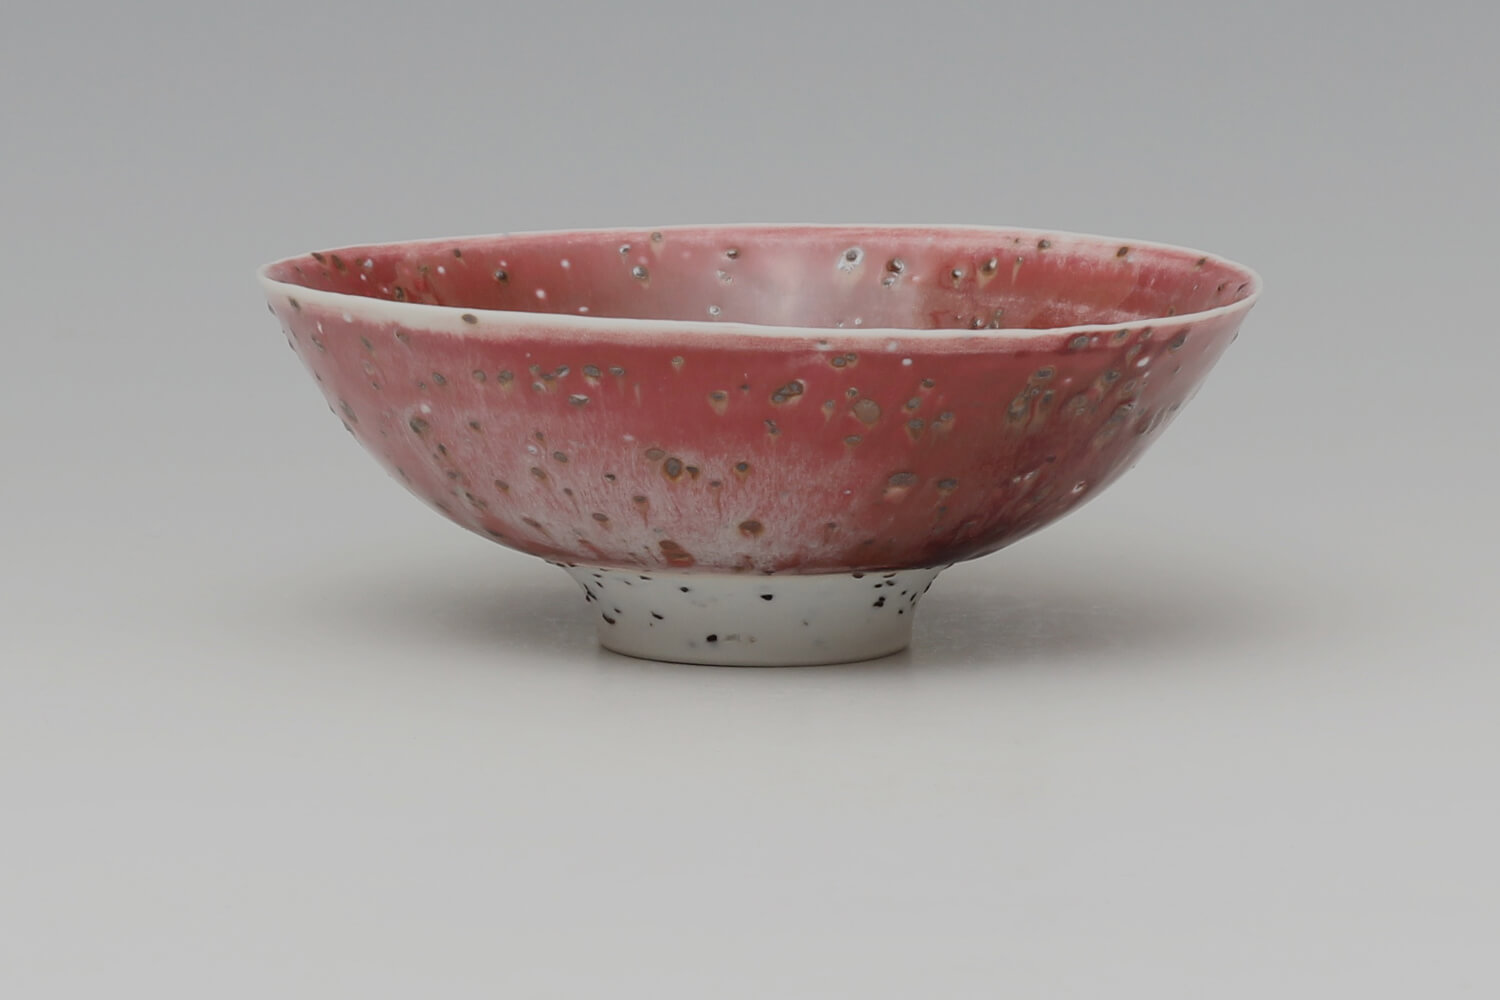 Peter Wills Small Ceramic Copper Red River Grogged Porcelain Bowl 196